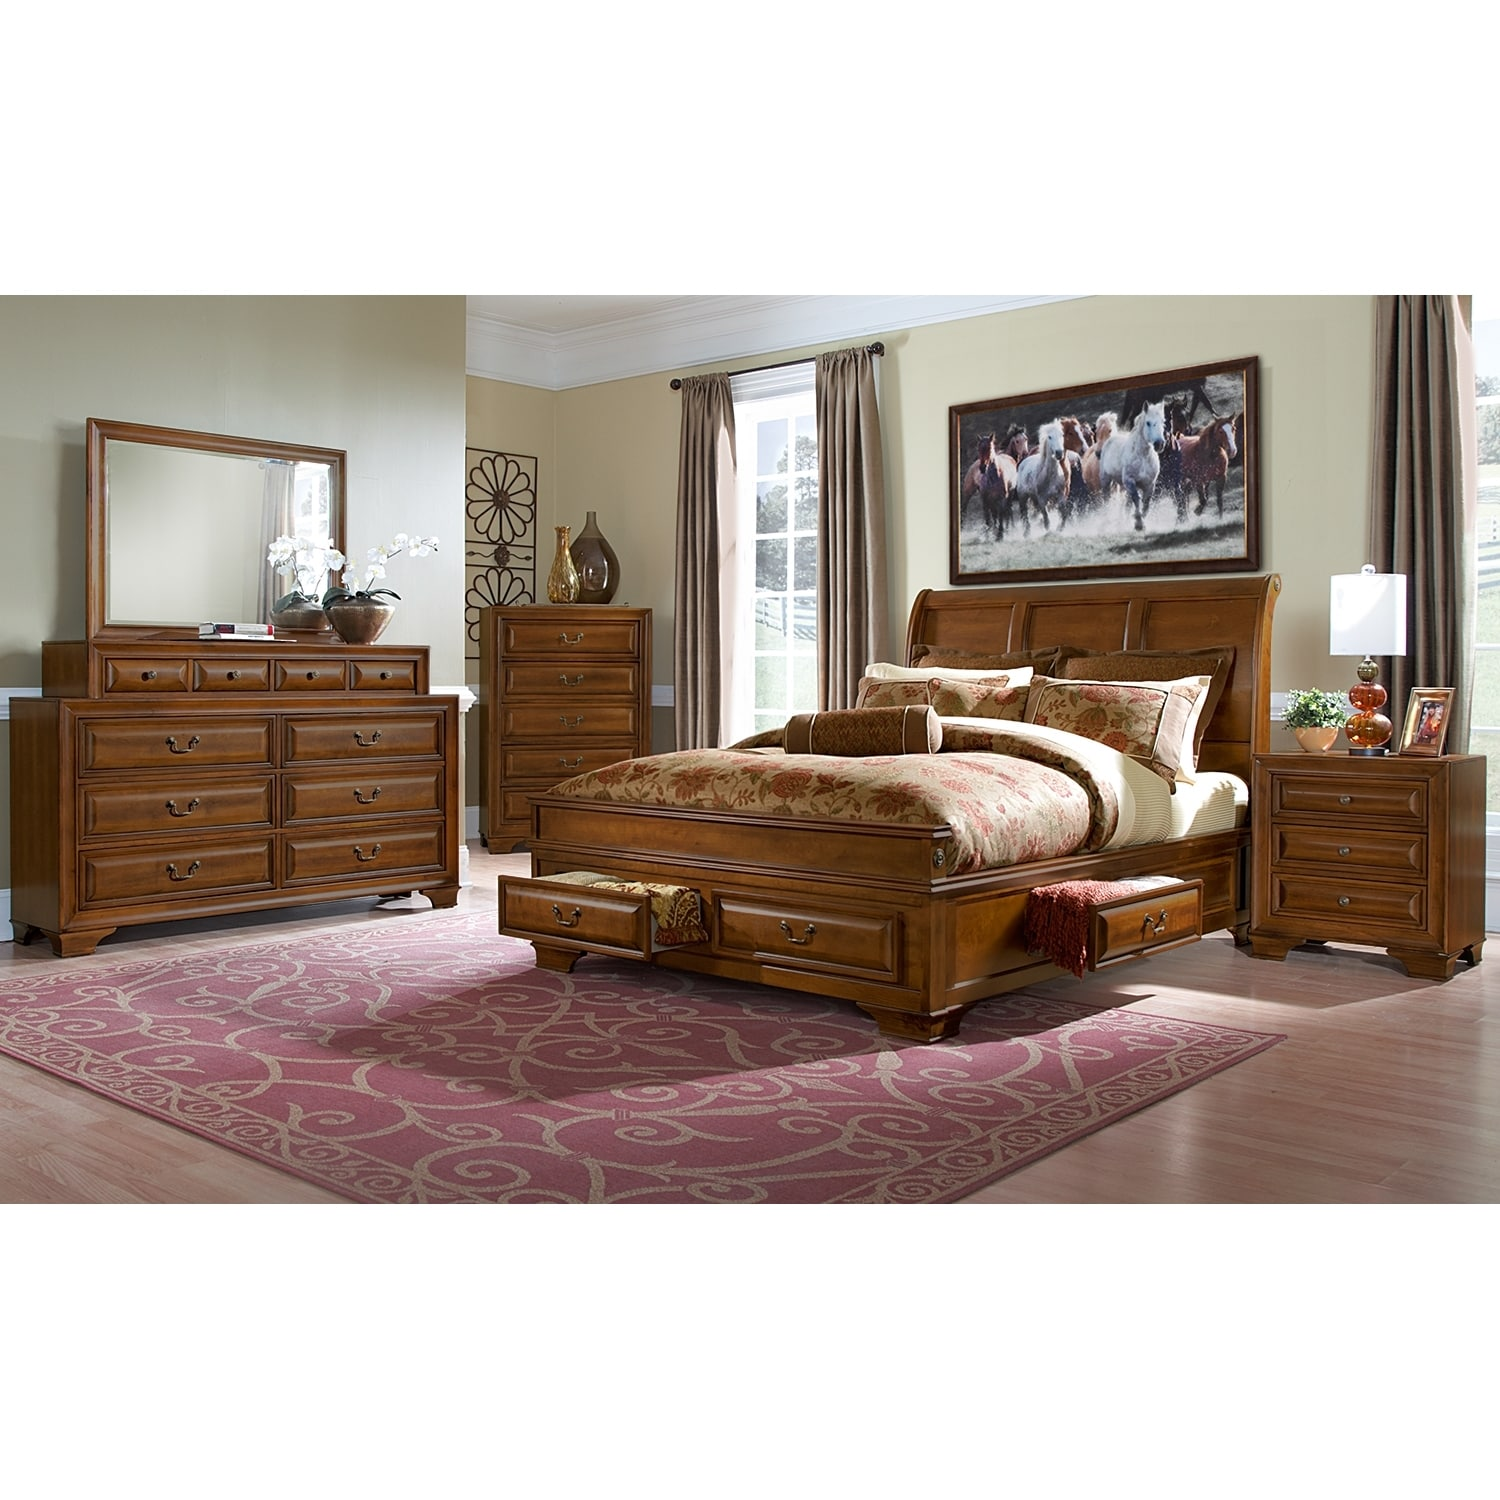 American Signature Furniture Com: Sanibelle Queen Storage Bed - Pine